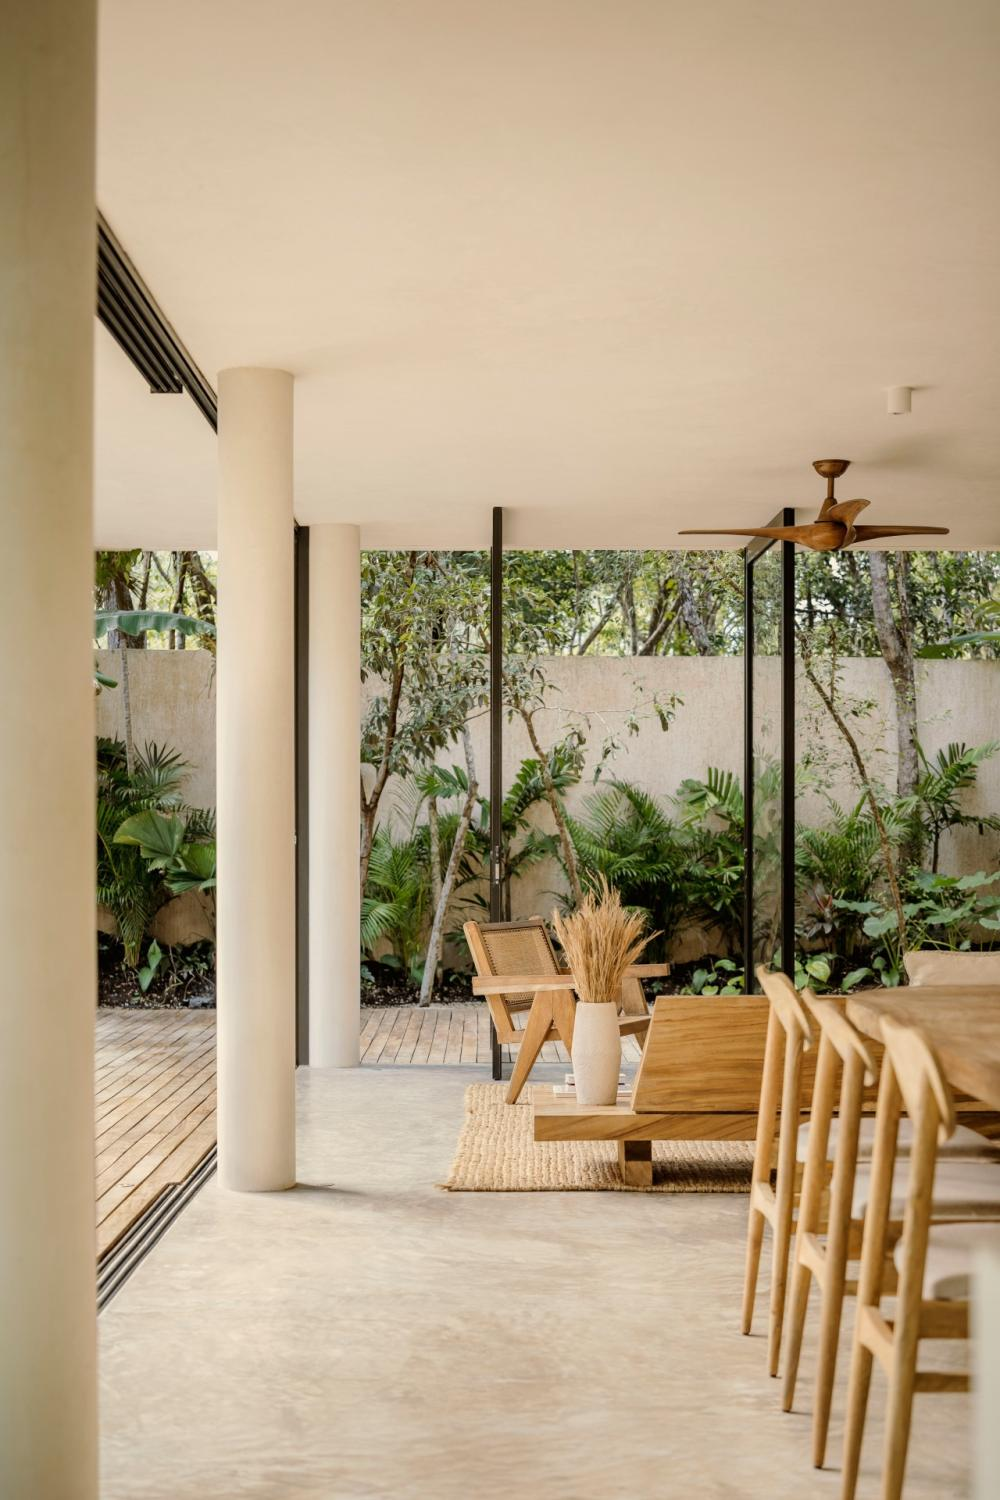 House tour: a peaceful, tropical holiday home in the trendy Mexican beach town of Tulum-10.jpg